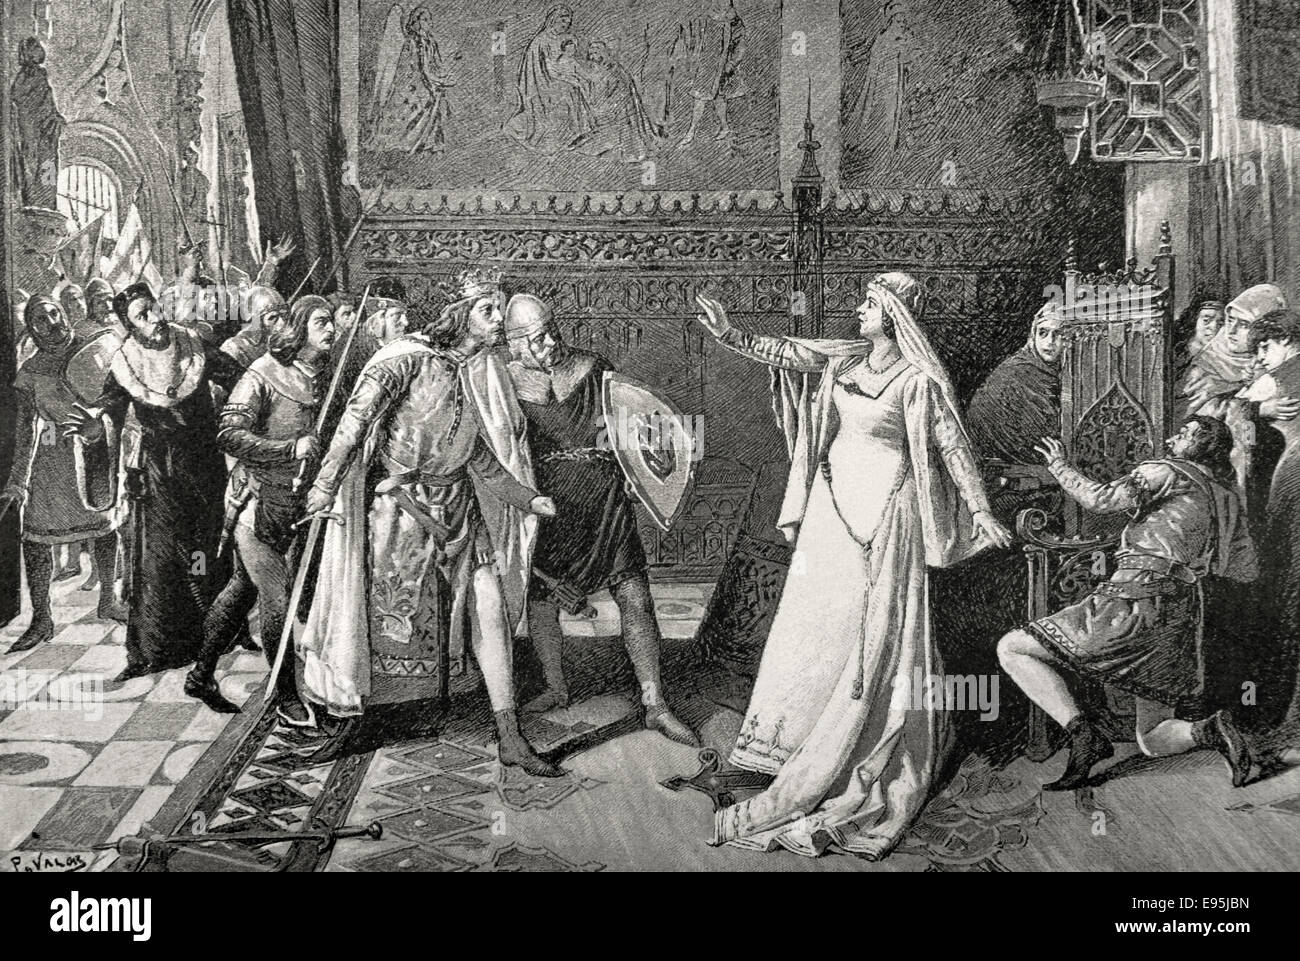 Maria de Molina (1265-1321). Queen regent. Maria defending the infant Don Juan. Engraving. - Stock Image